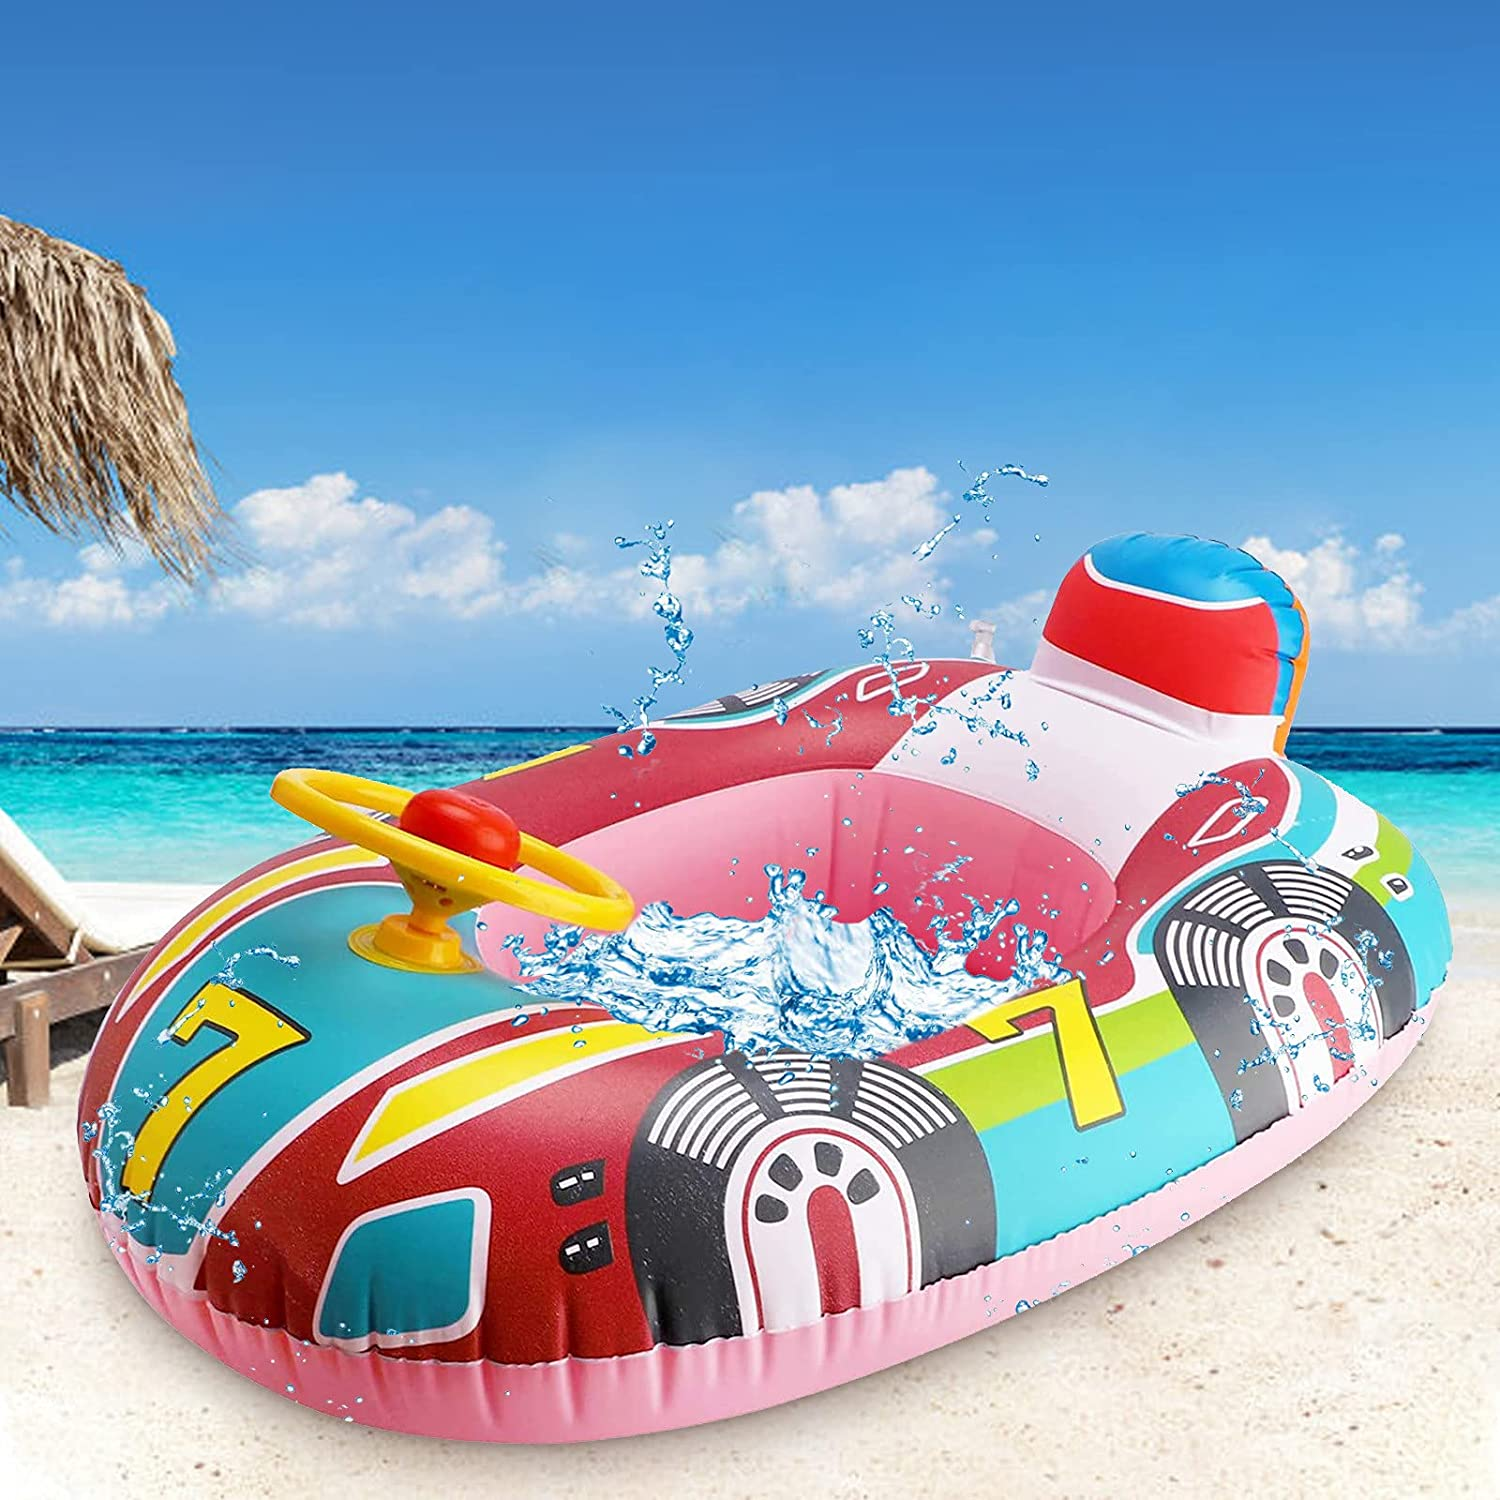 New Omaha Mall York Mall Toddler Pool Floats Inflatable Kids Ring Water with Handl Float